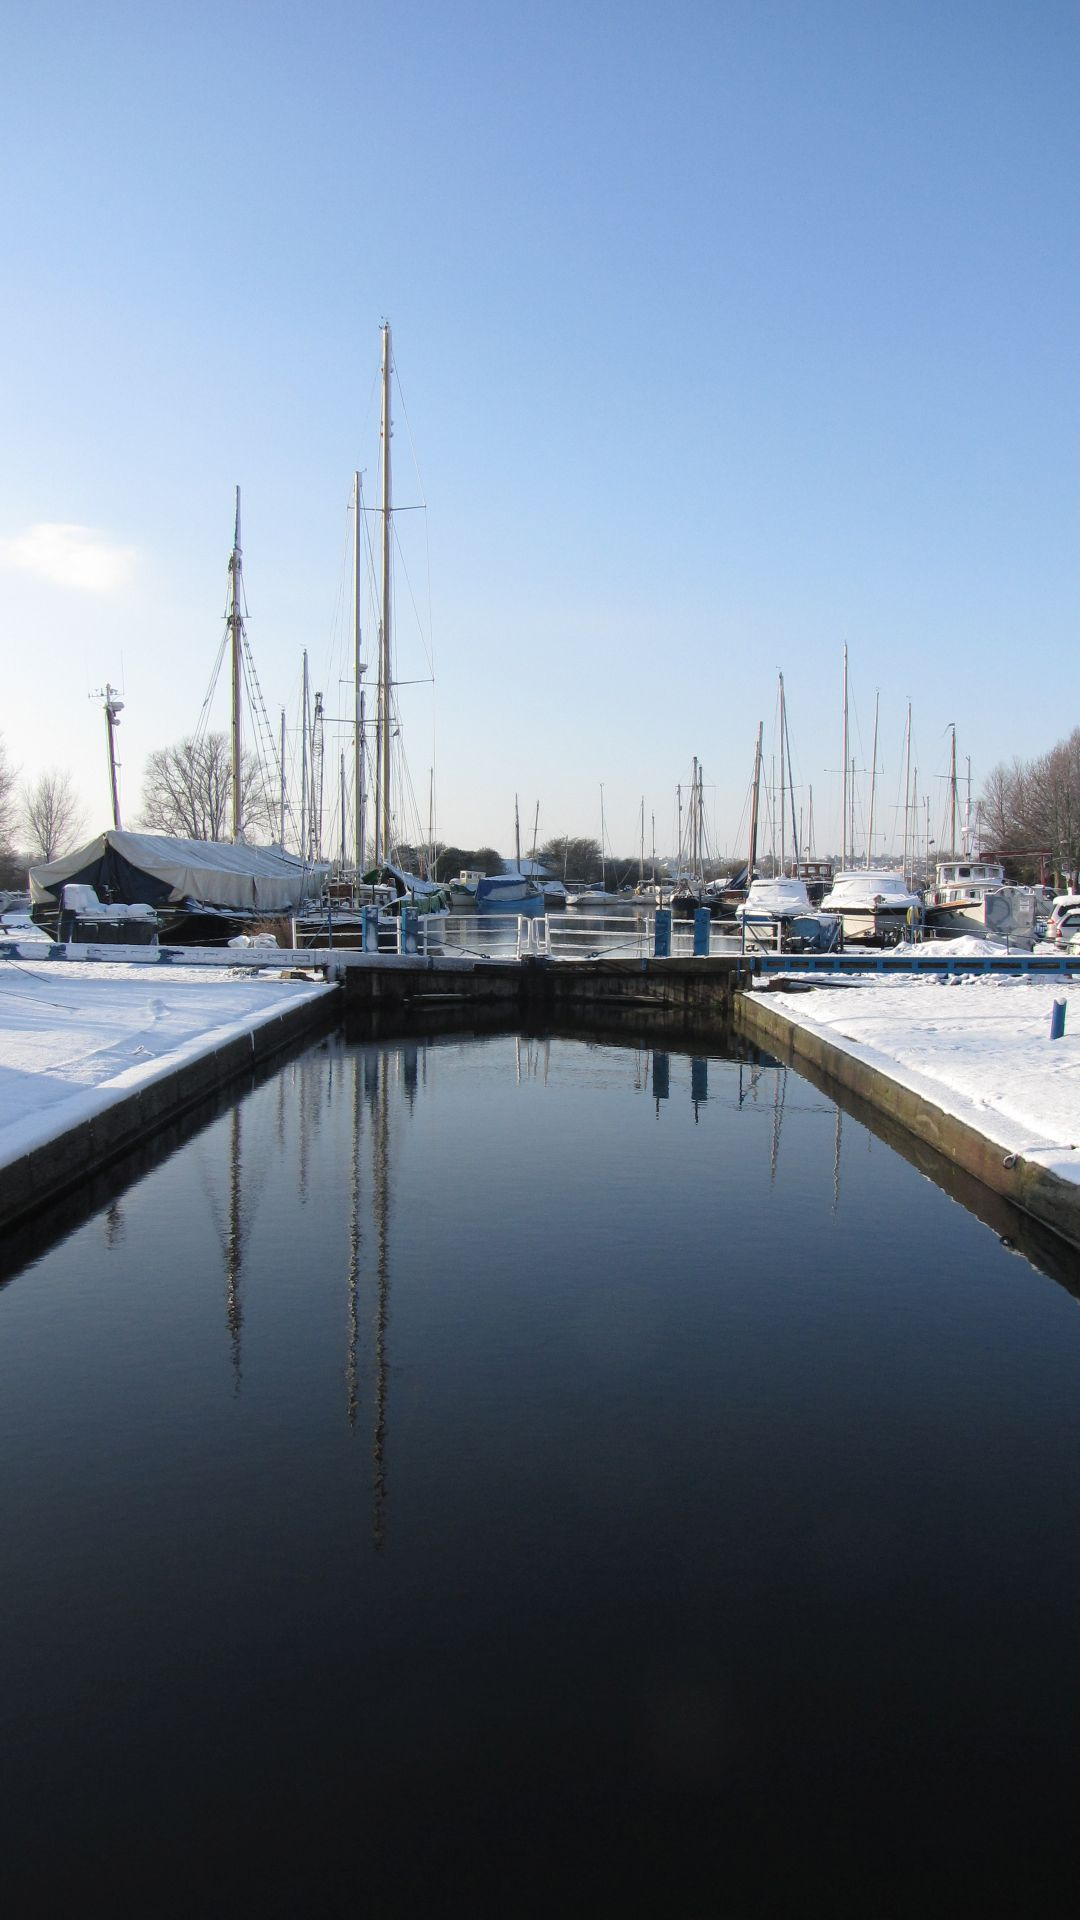 Heybridge Basin, Essex, UK - the locks at the 'Chelmer & Blackwter Navigation' (canal)